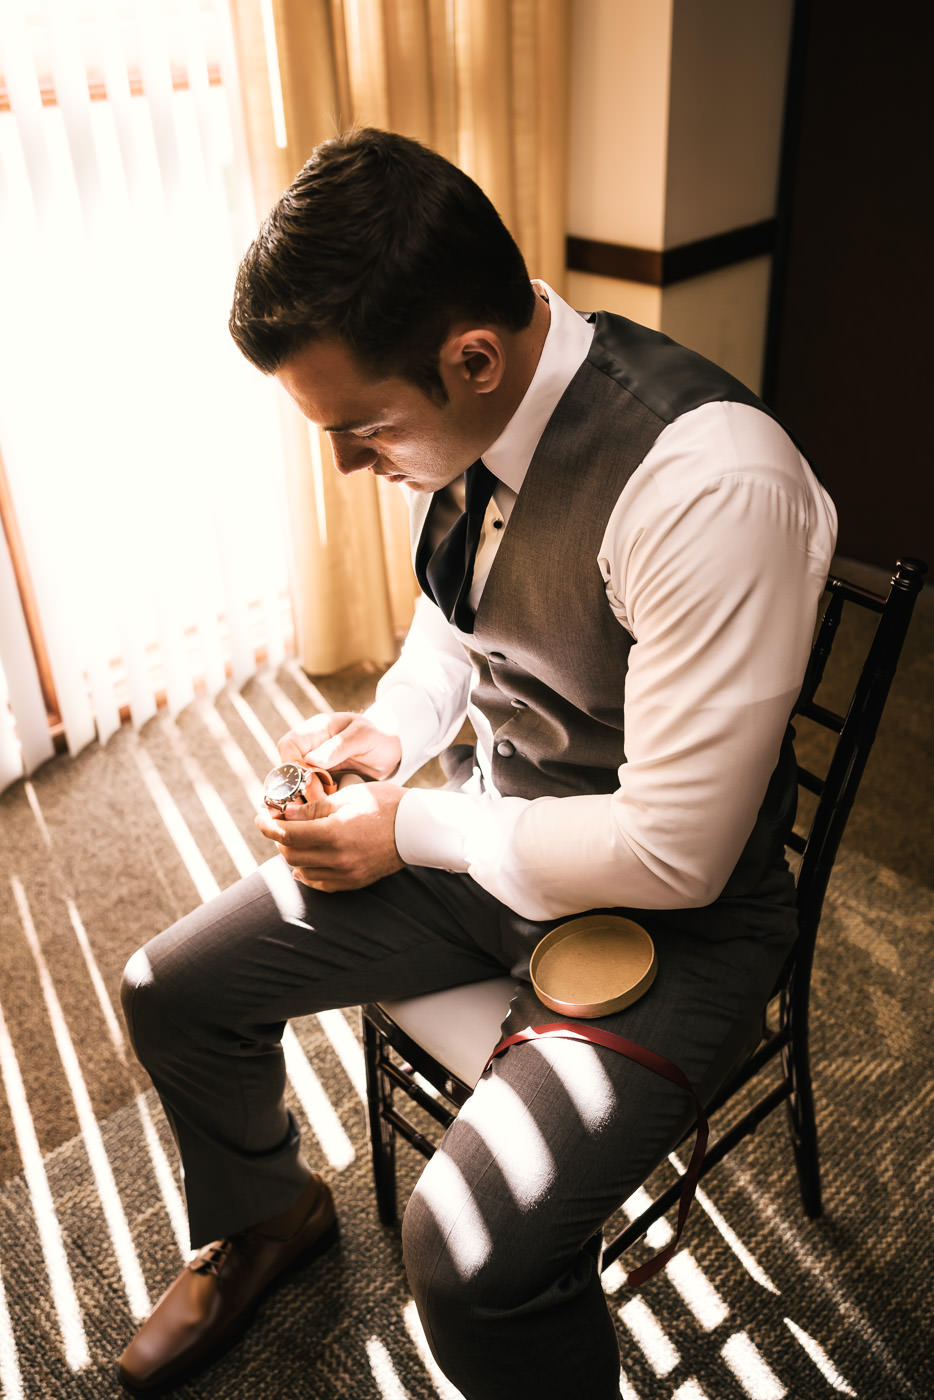 Groom sits in the light of the window and opens a gift from his bride.